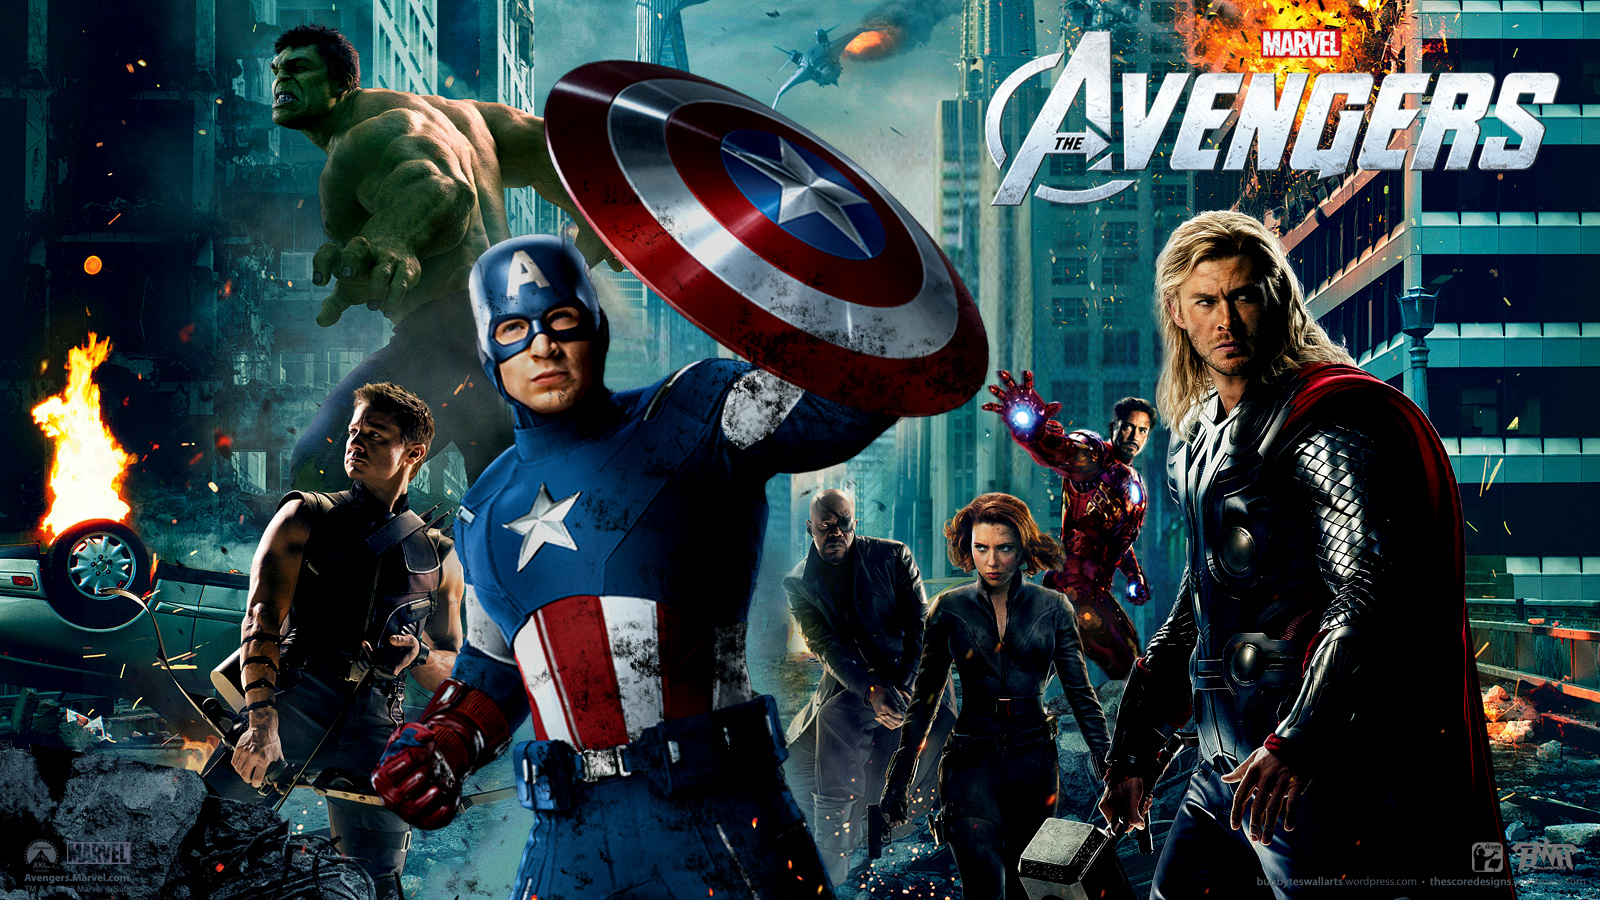 avengers hollywood best movie hd wallpapers 2015 - all hd wallpapers